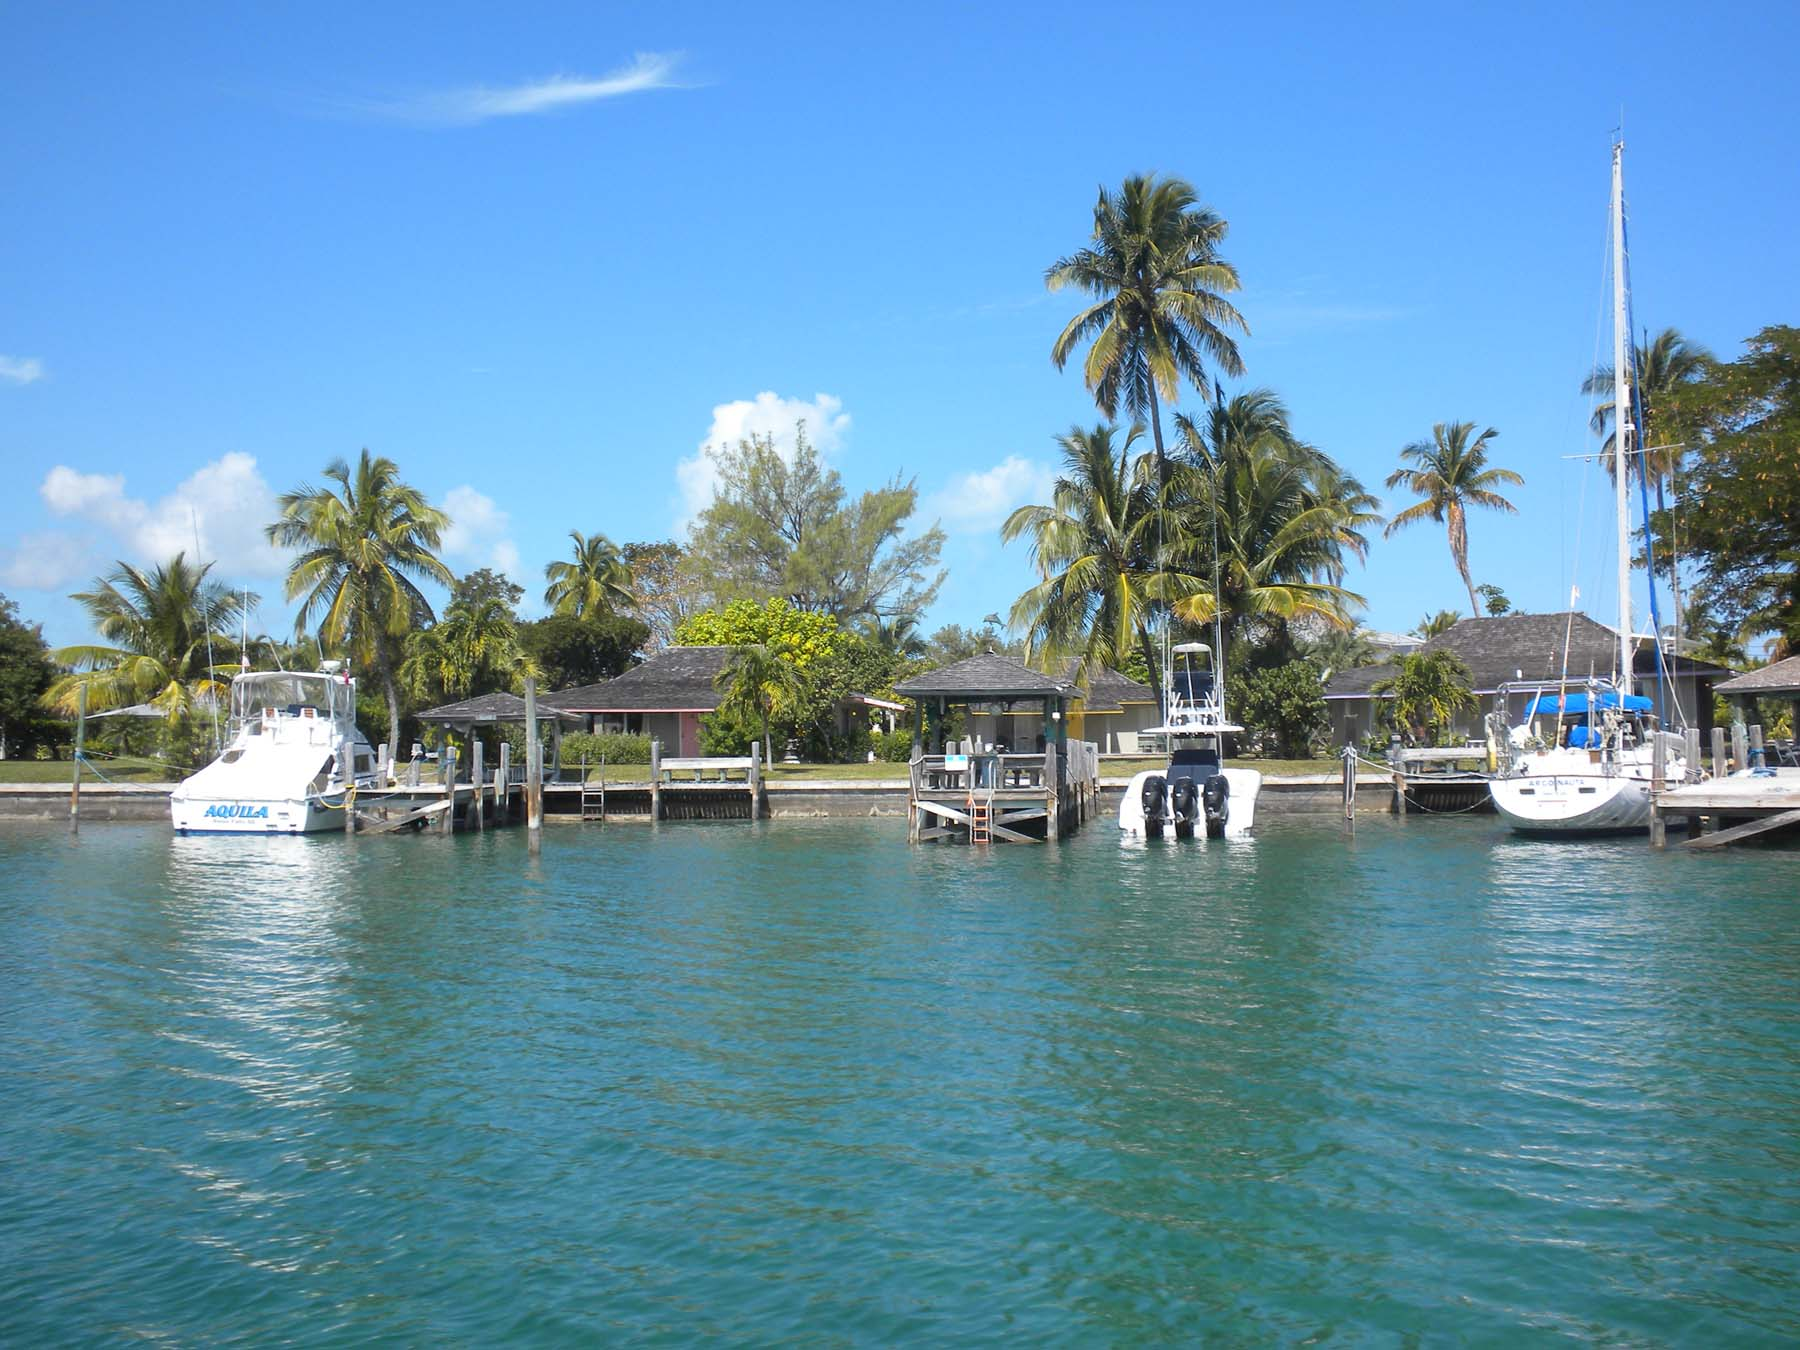 direct view across bay or canal of villas